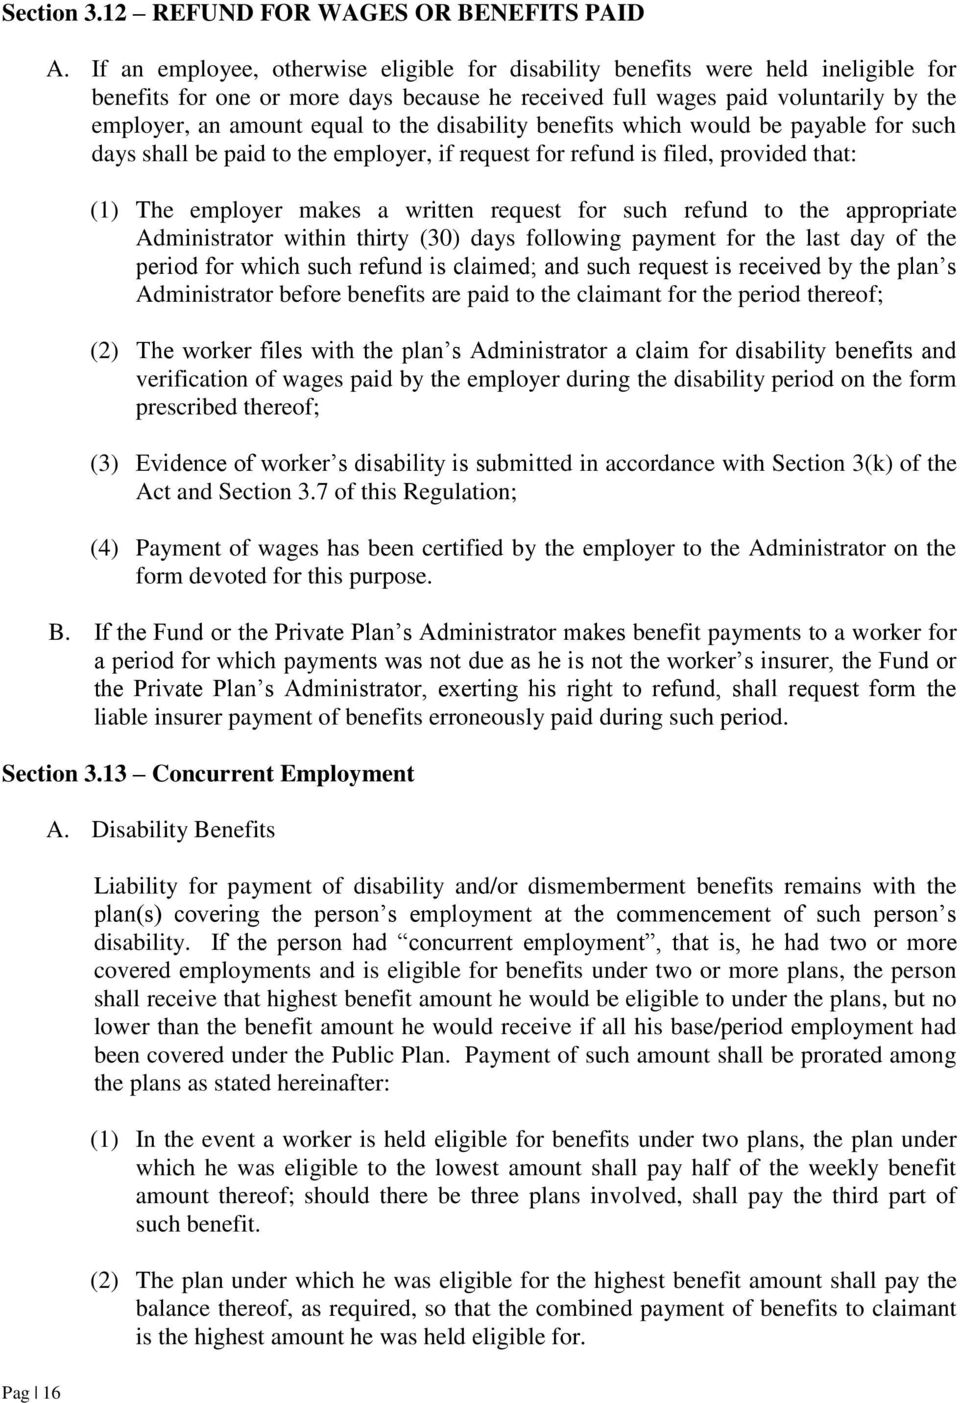 the disability benefits which would be payable for such days shall be paid to the employer, if request for refund is filed, provided that: (1) The employer makes a written request for such refund to